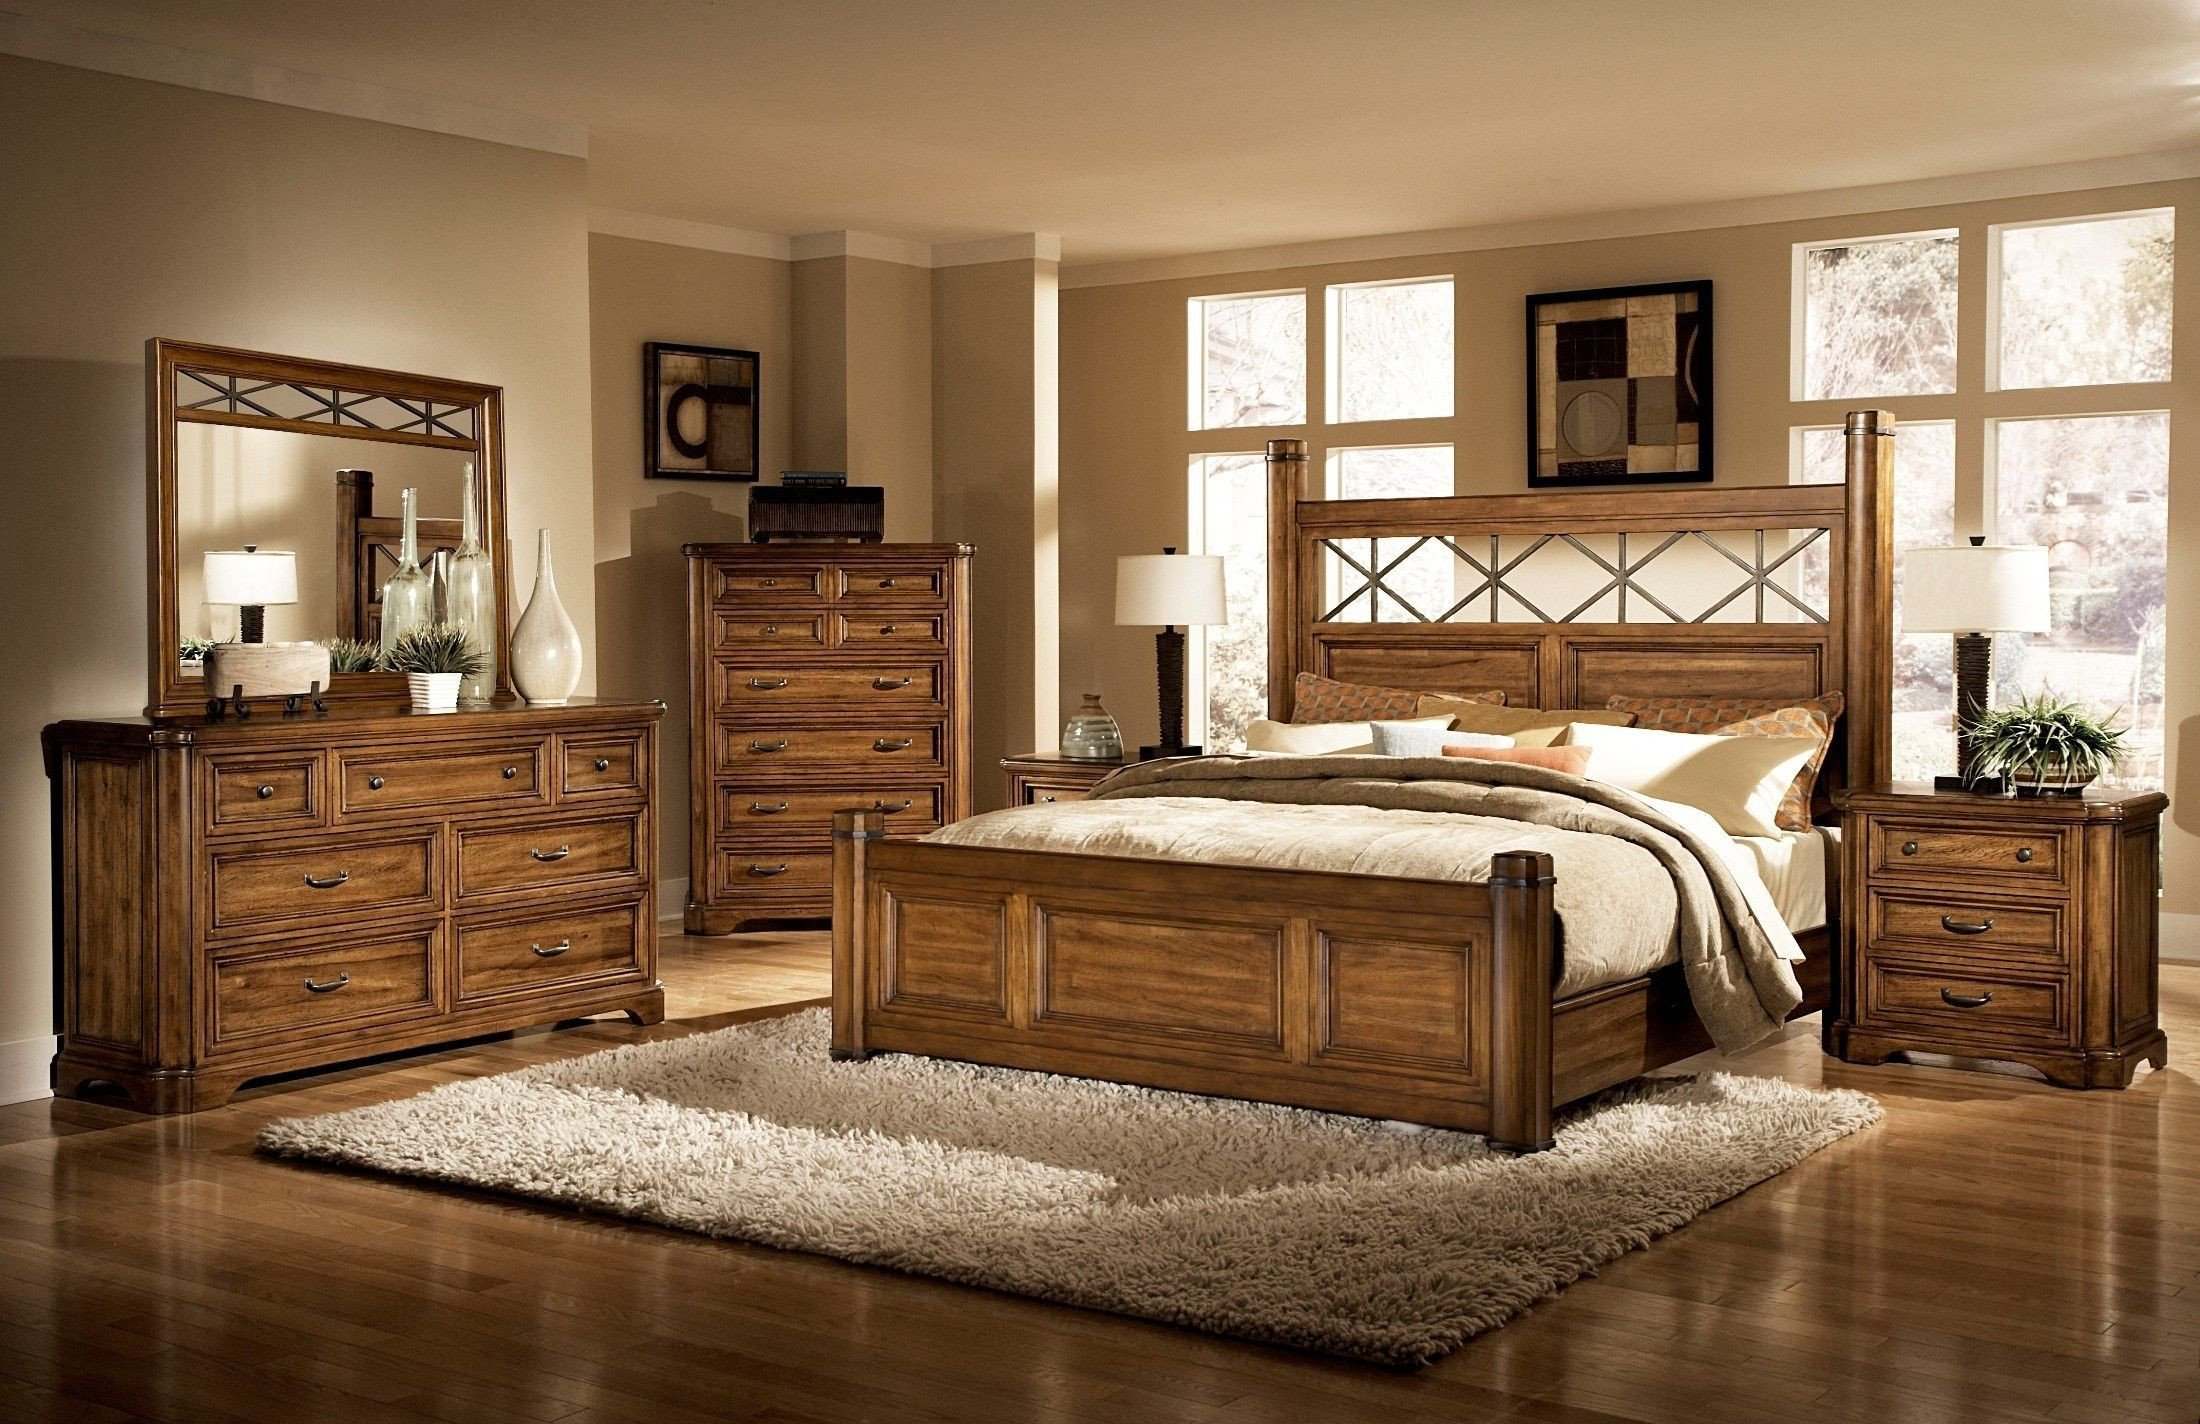 Wood Queen Bedroom Set Beautiful Copper Ridge Queen Bed Luxury Furniture Beds